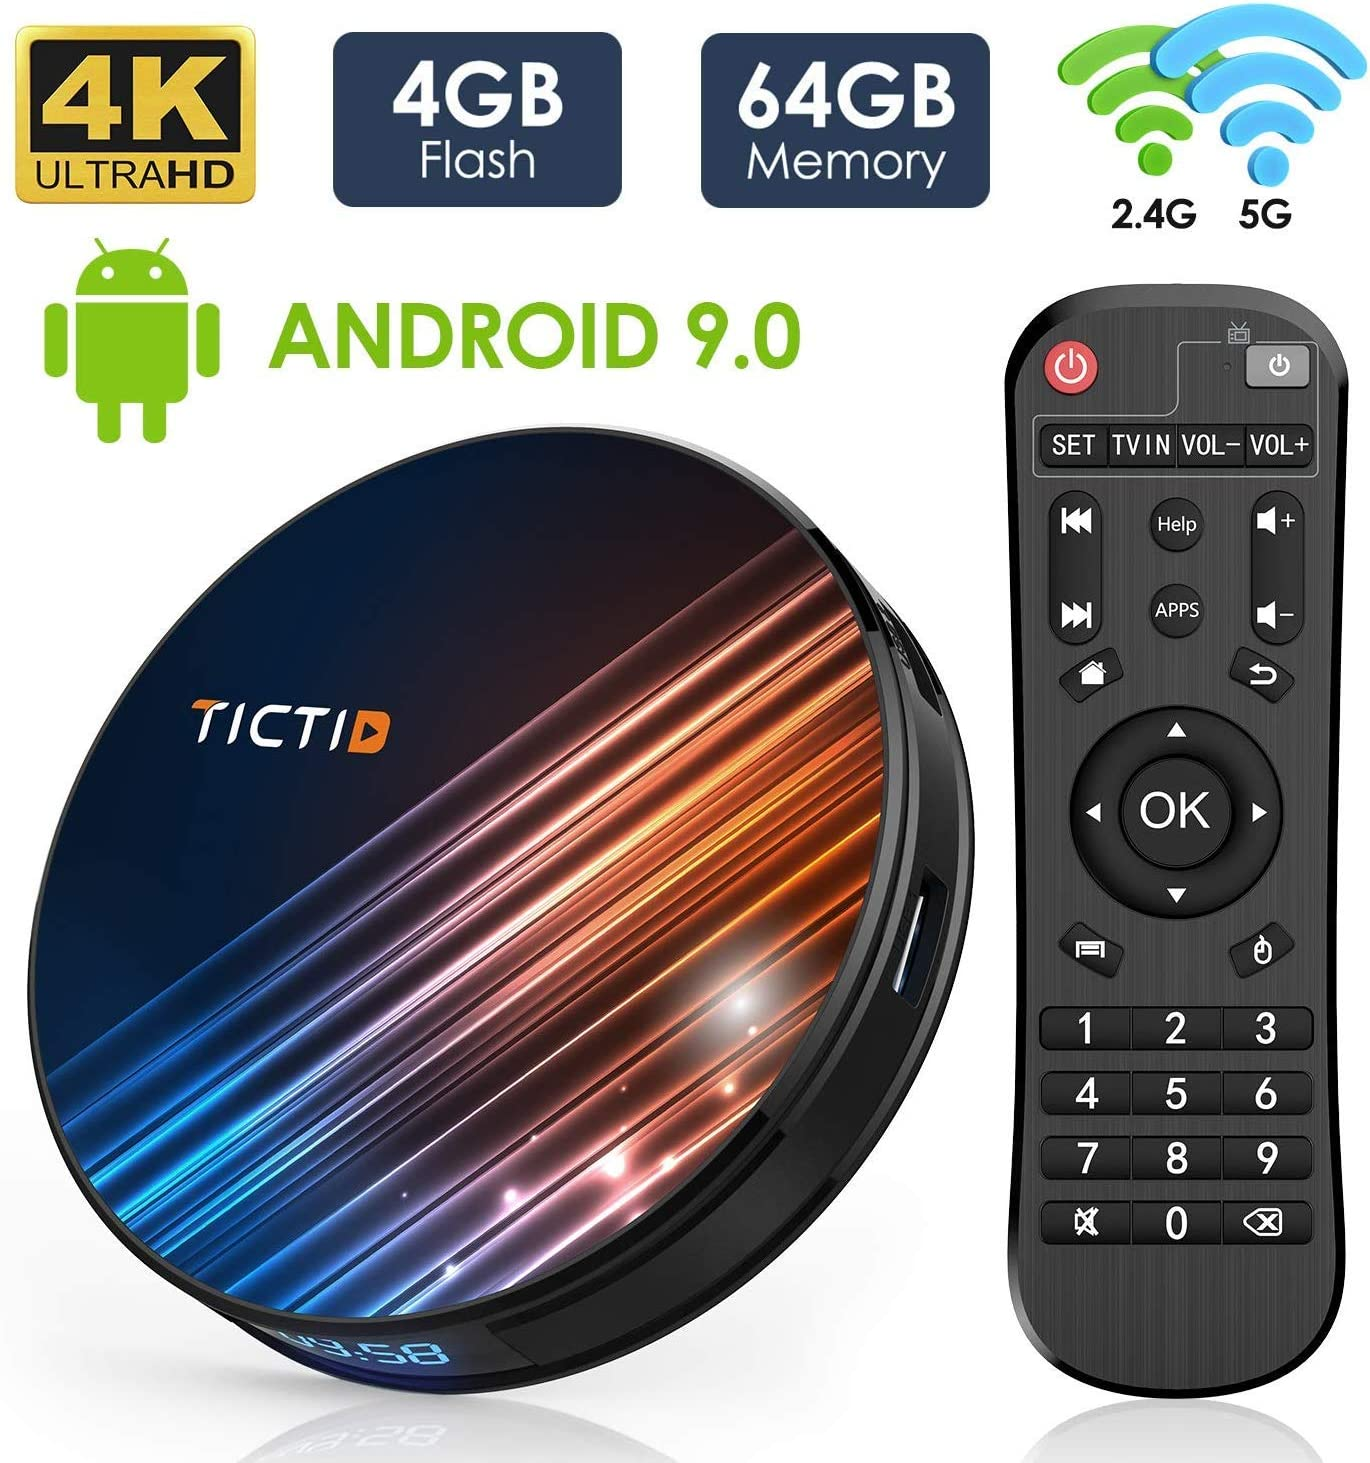 Android 9.0 TV Box 【4G+64G】 RK3318 Quad-Core 64bit Android TV Box, Wi-Fi Dual 5G/2.4G, BT 4.0, 4K*2K UHD H.265, USB 3.0 Smart TV Box: Amazon.es: Electrónica